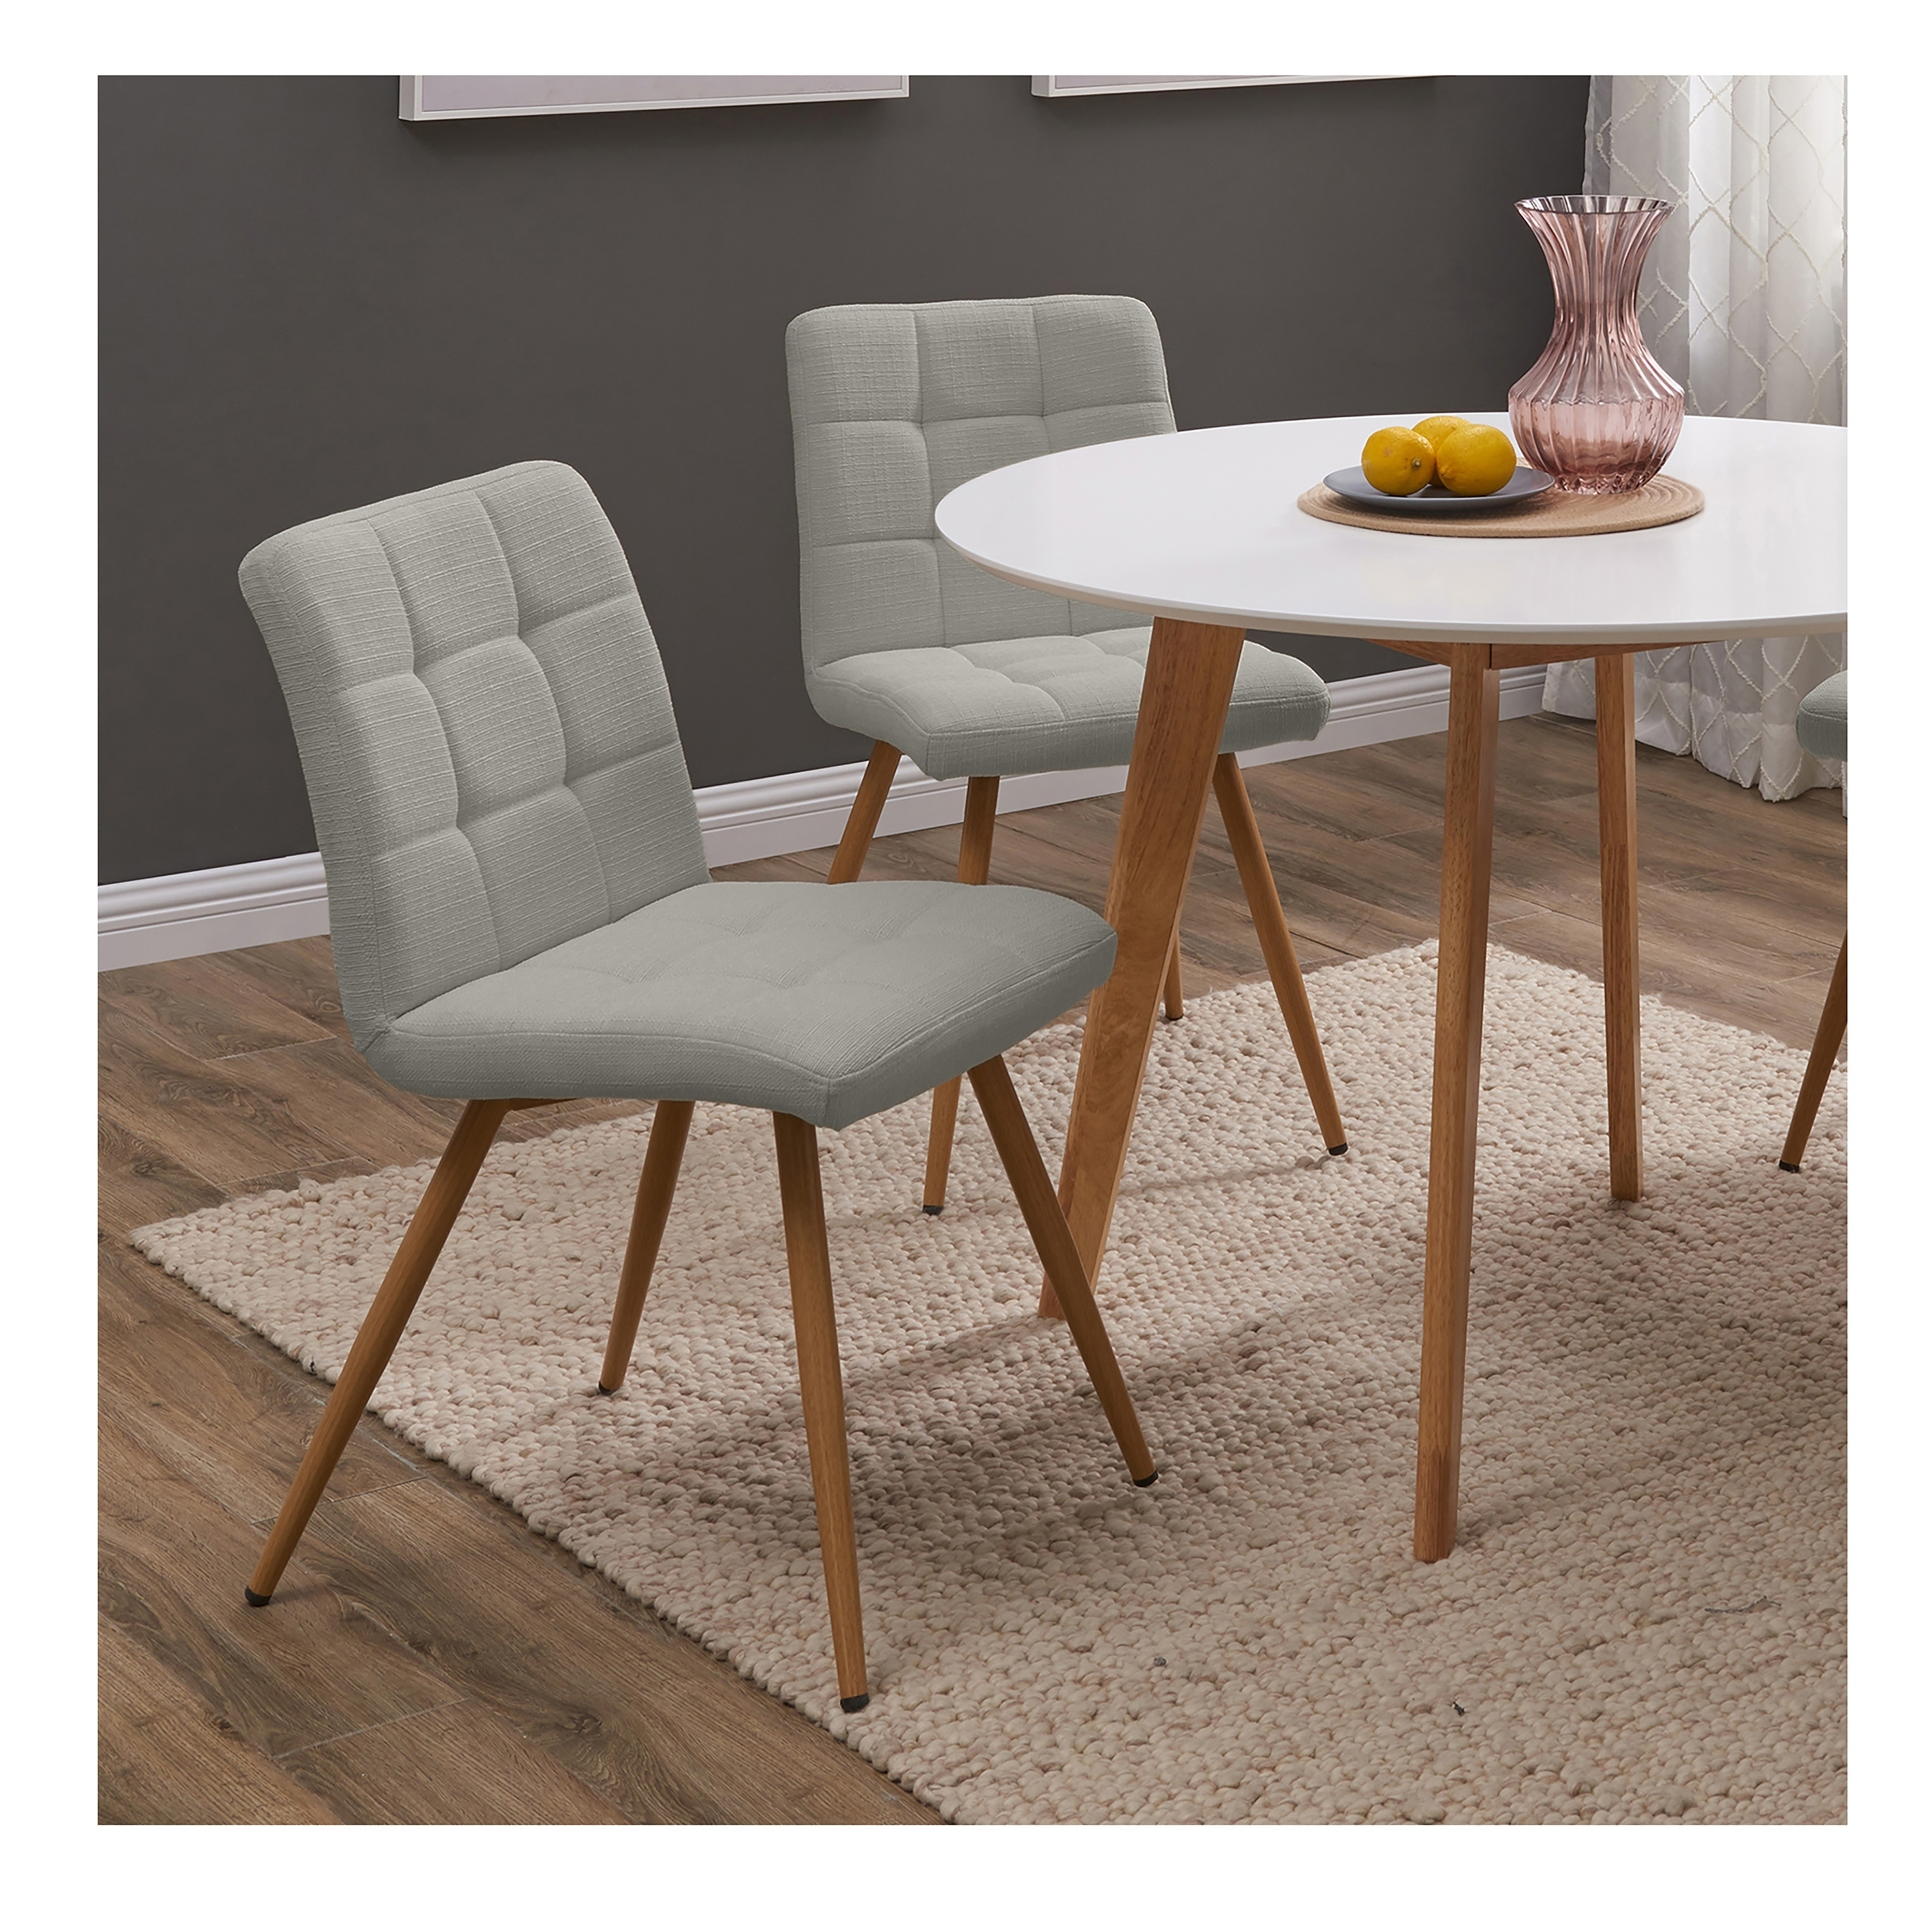 Buy Handy Living Kitchen Dining Room Chairs Online At